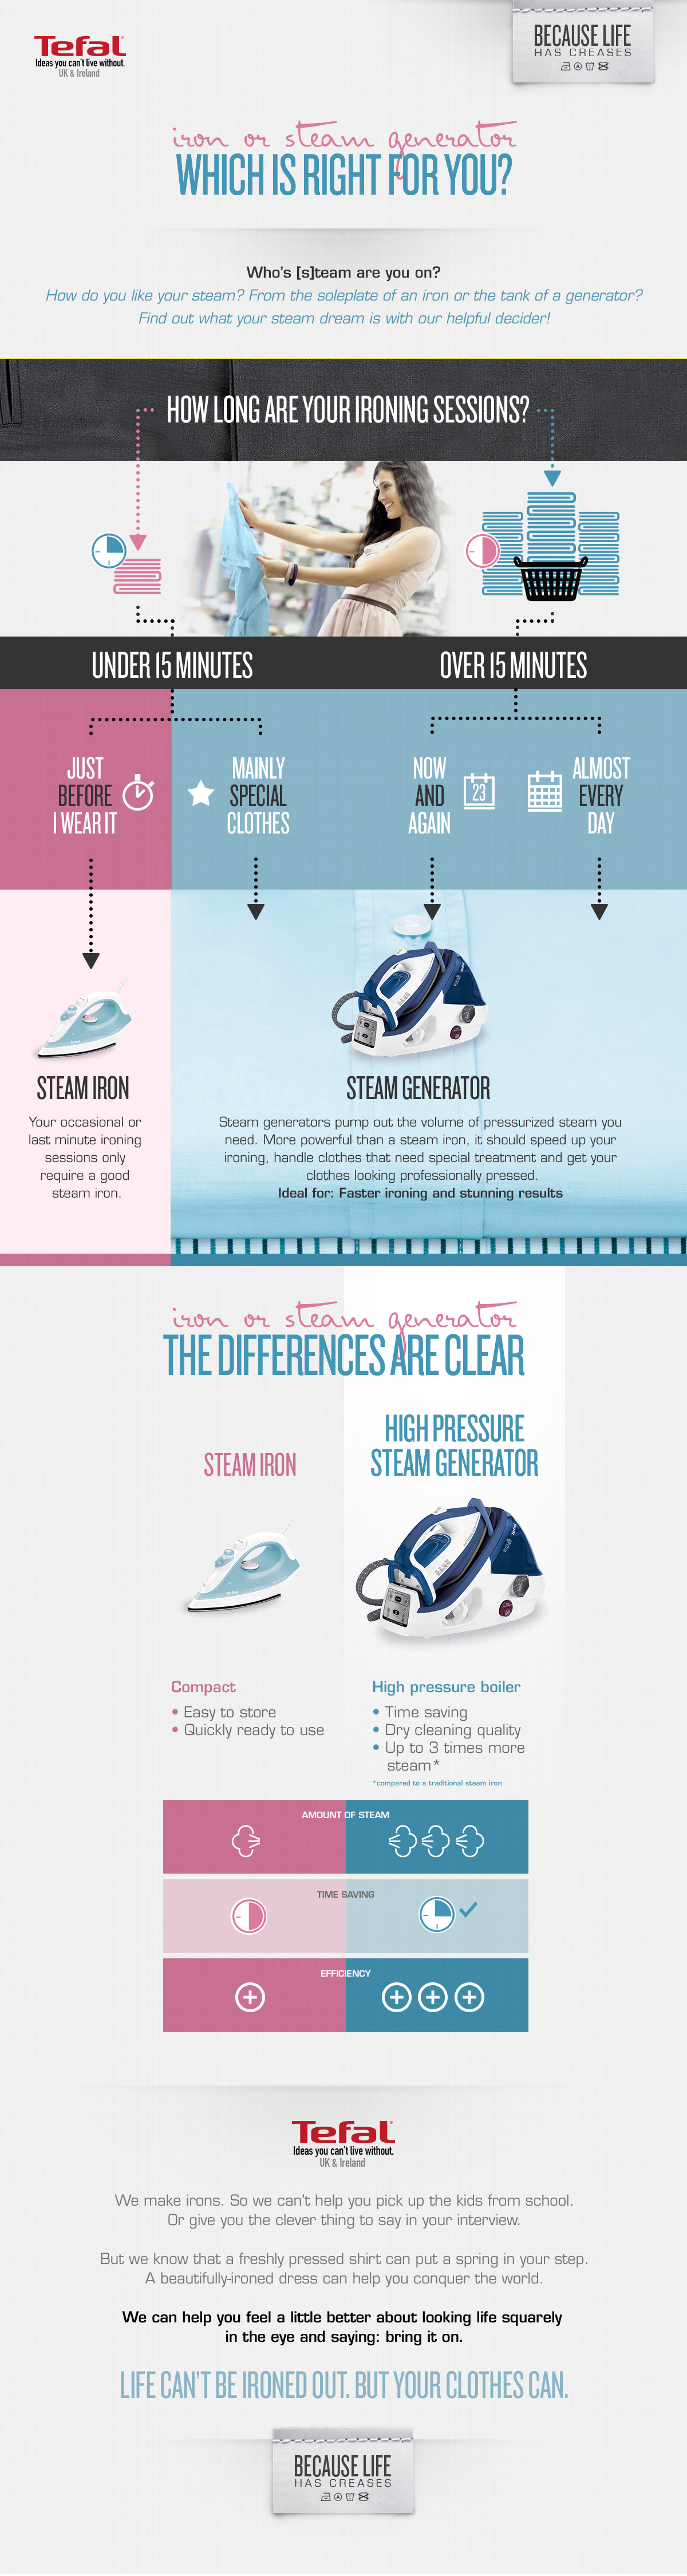 Iron or Steam Generator – Which Is Right For You